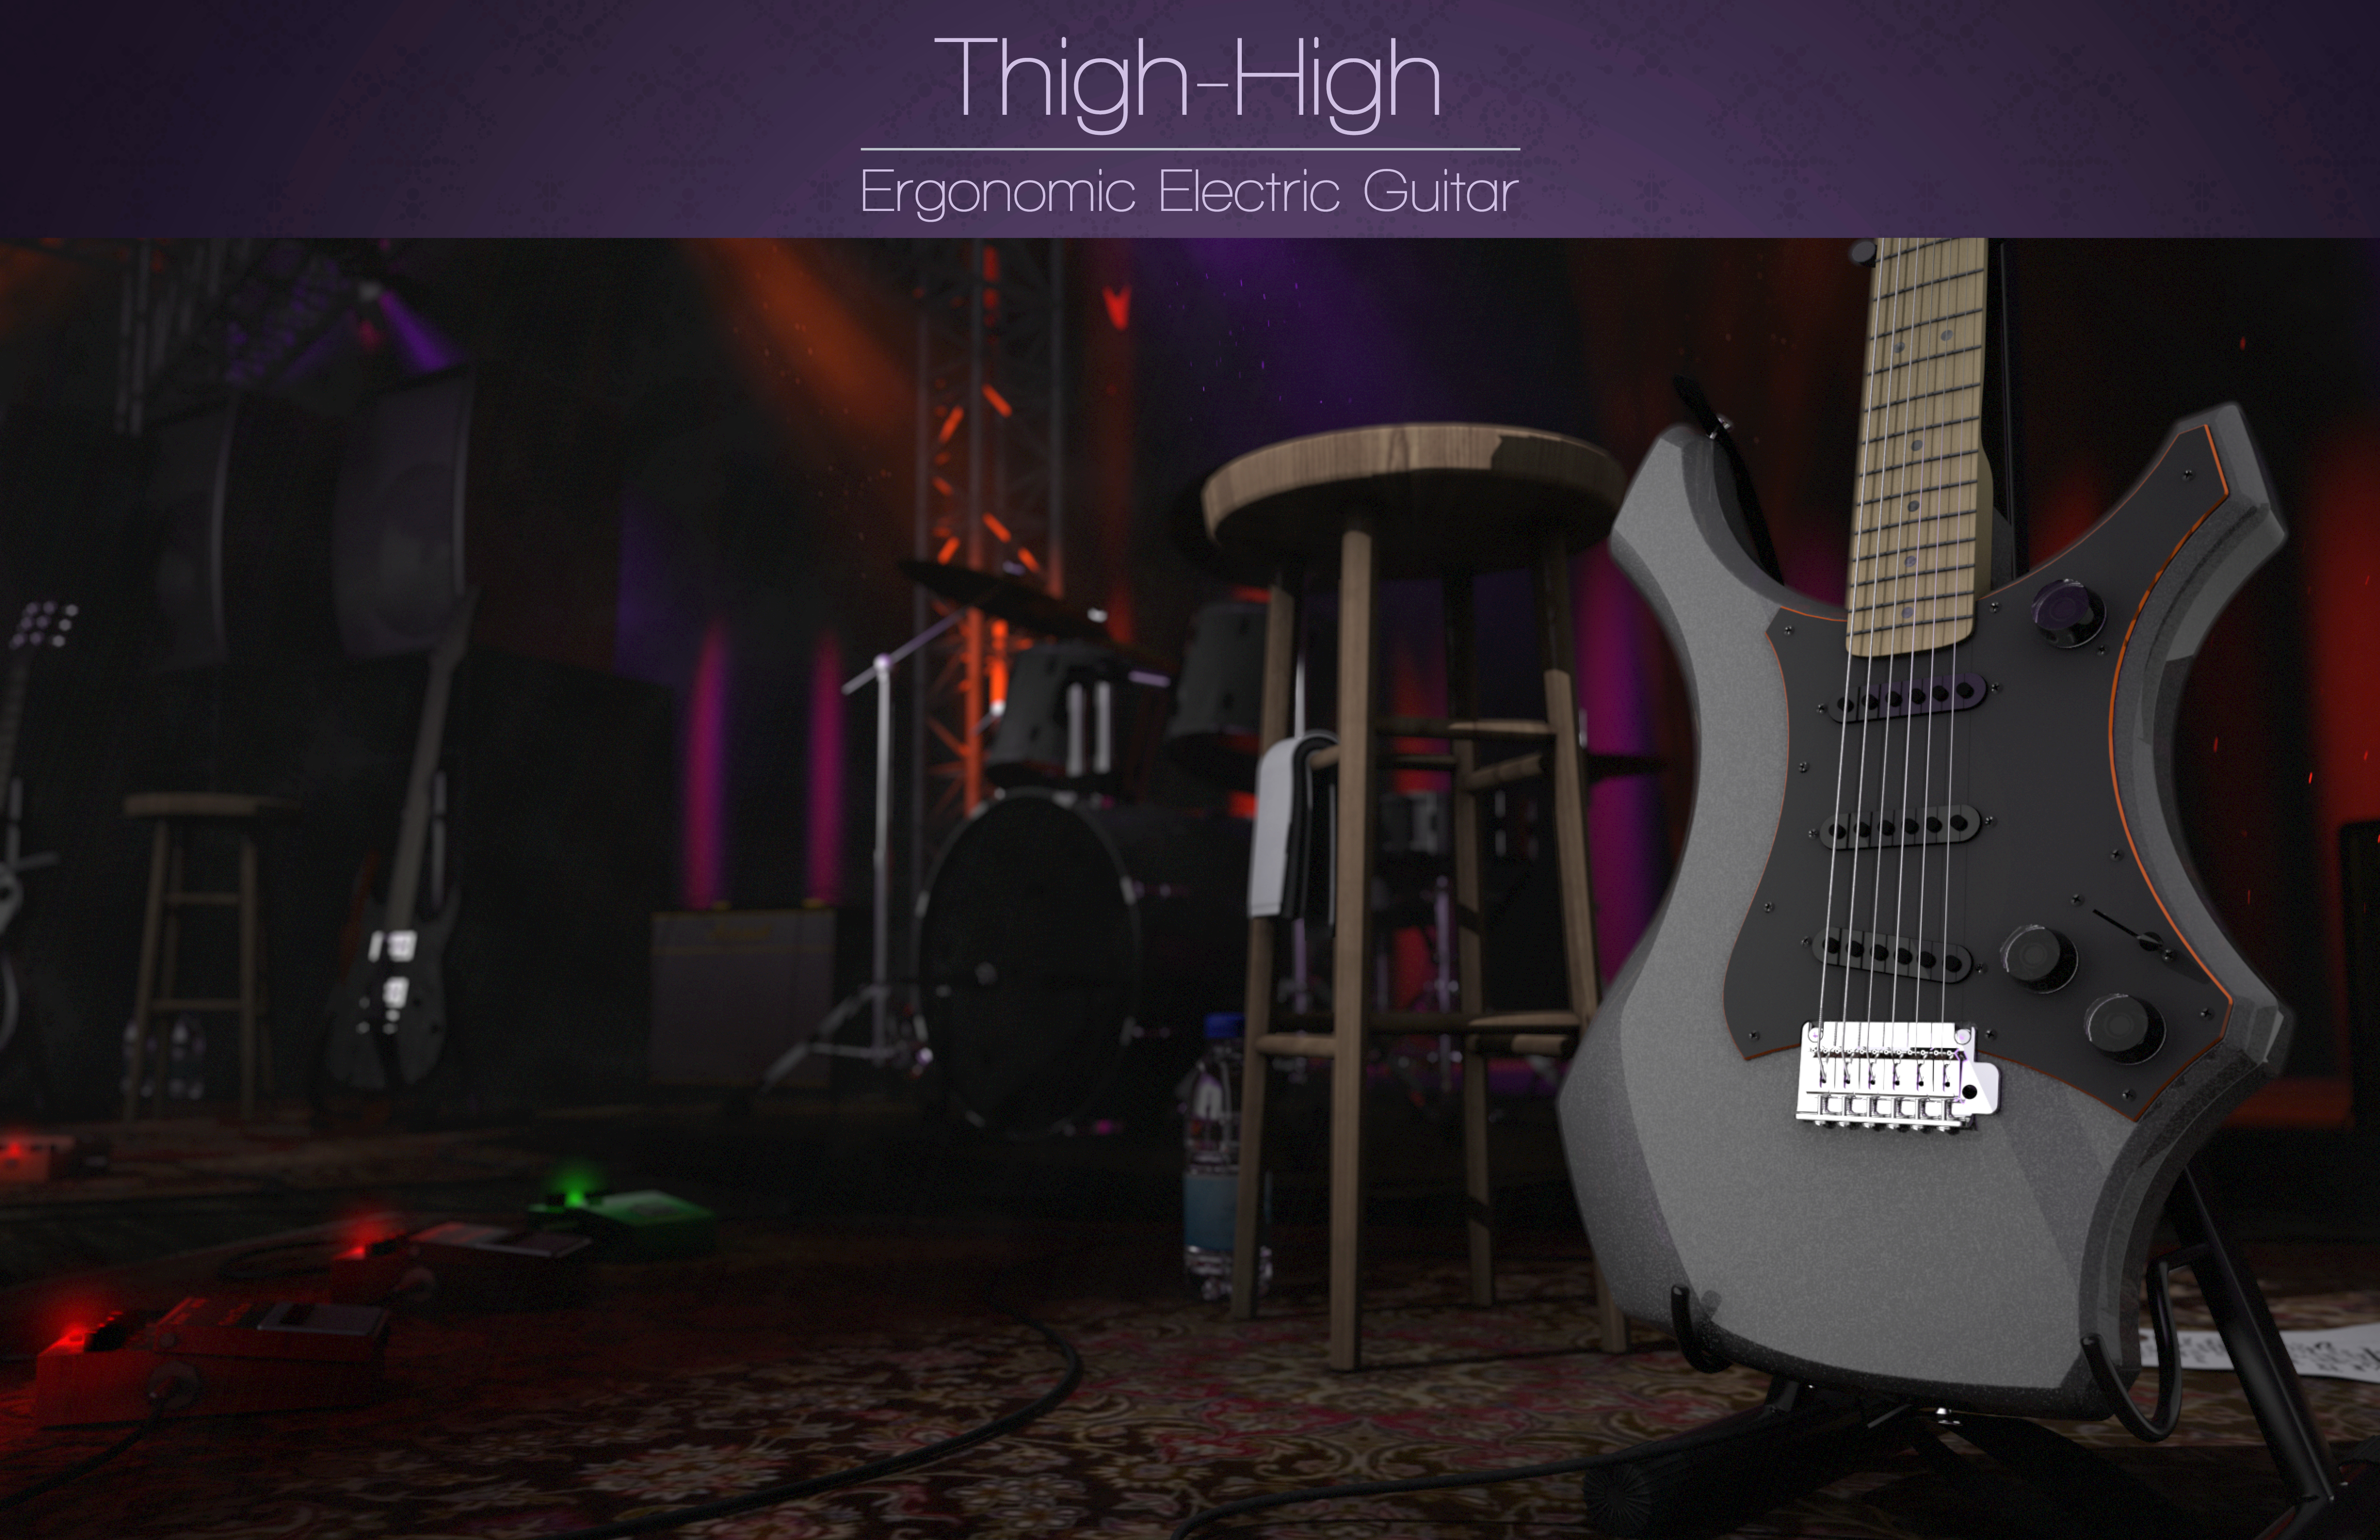 Thigh-High Electric Guitar